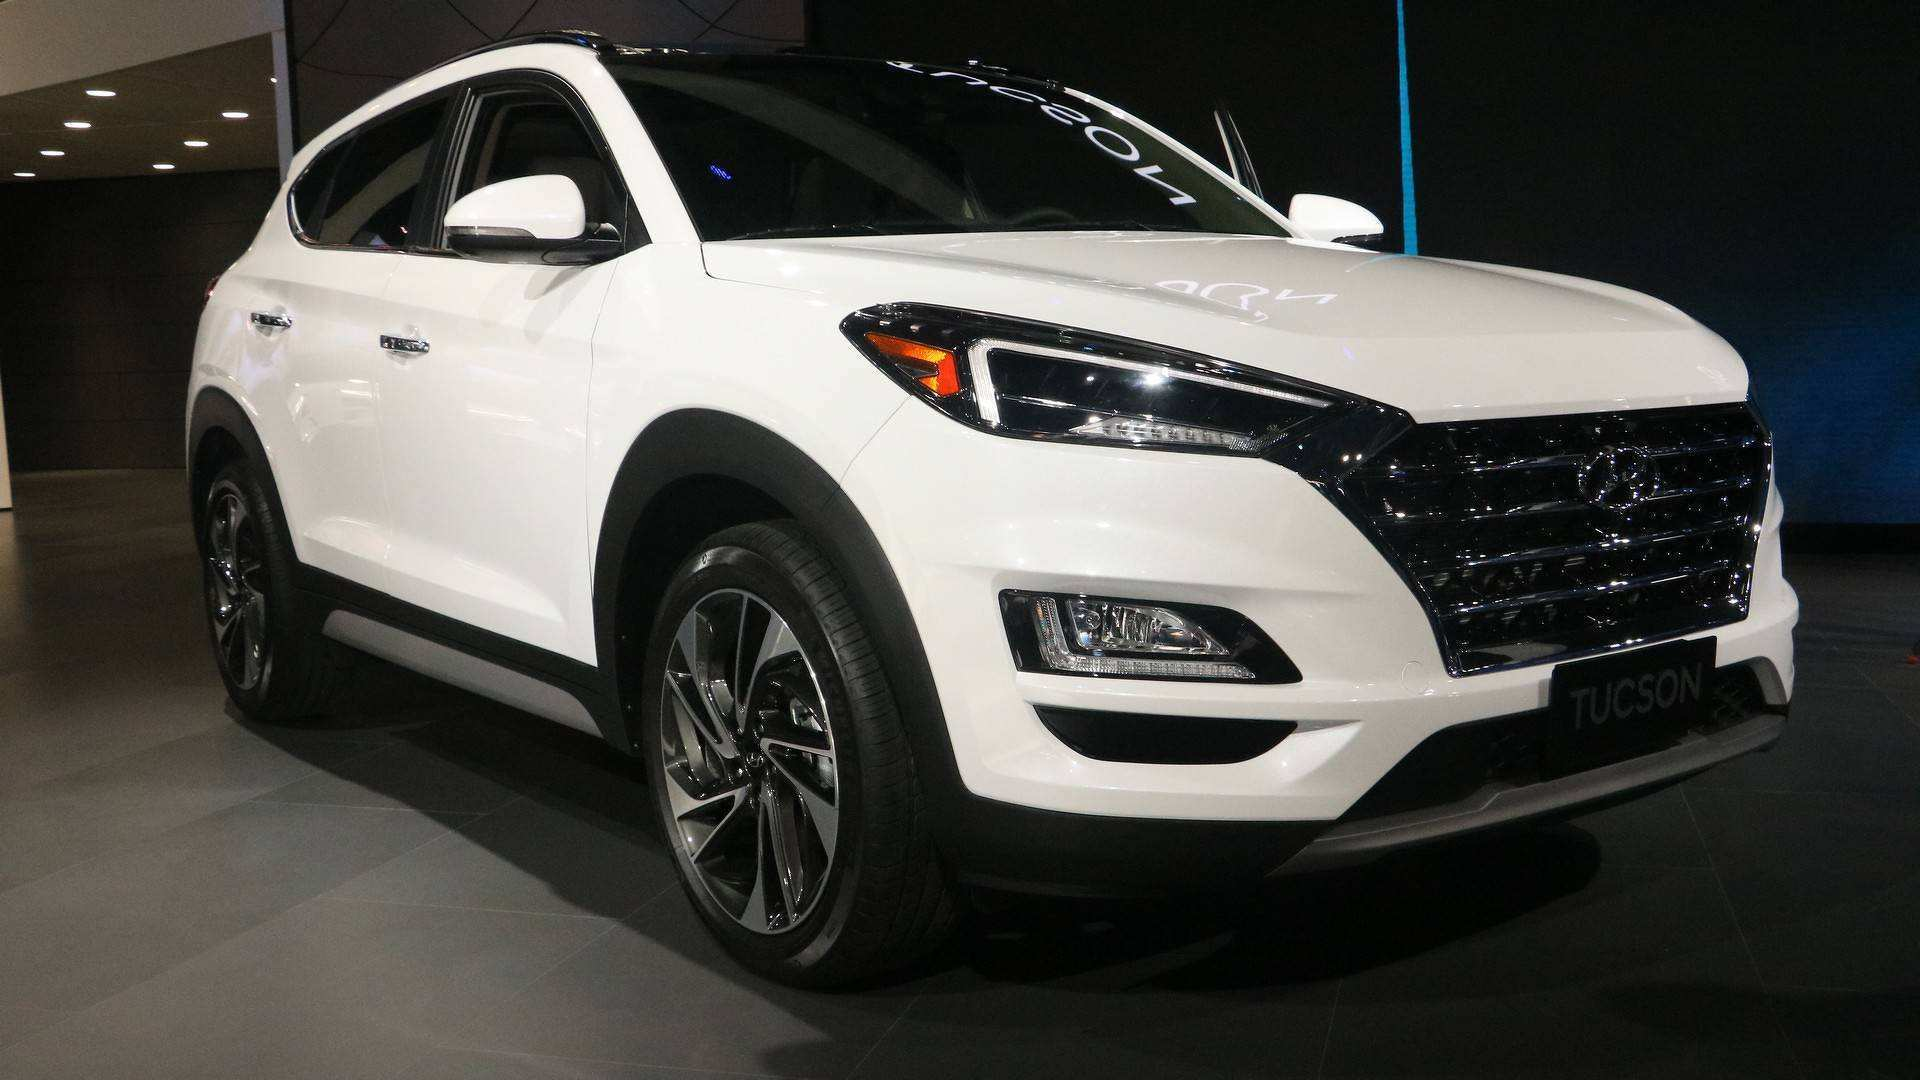 88 Best Review Hyundai Tucson 2019 Facelift New Review by Hyundai Tucson 2019 Facelift